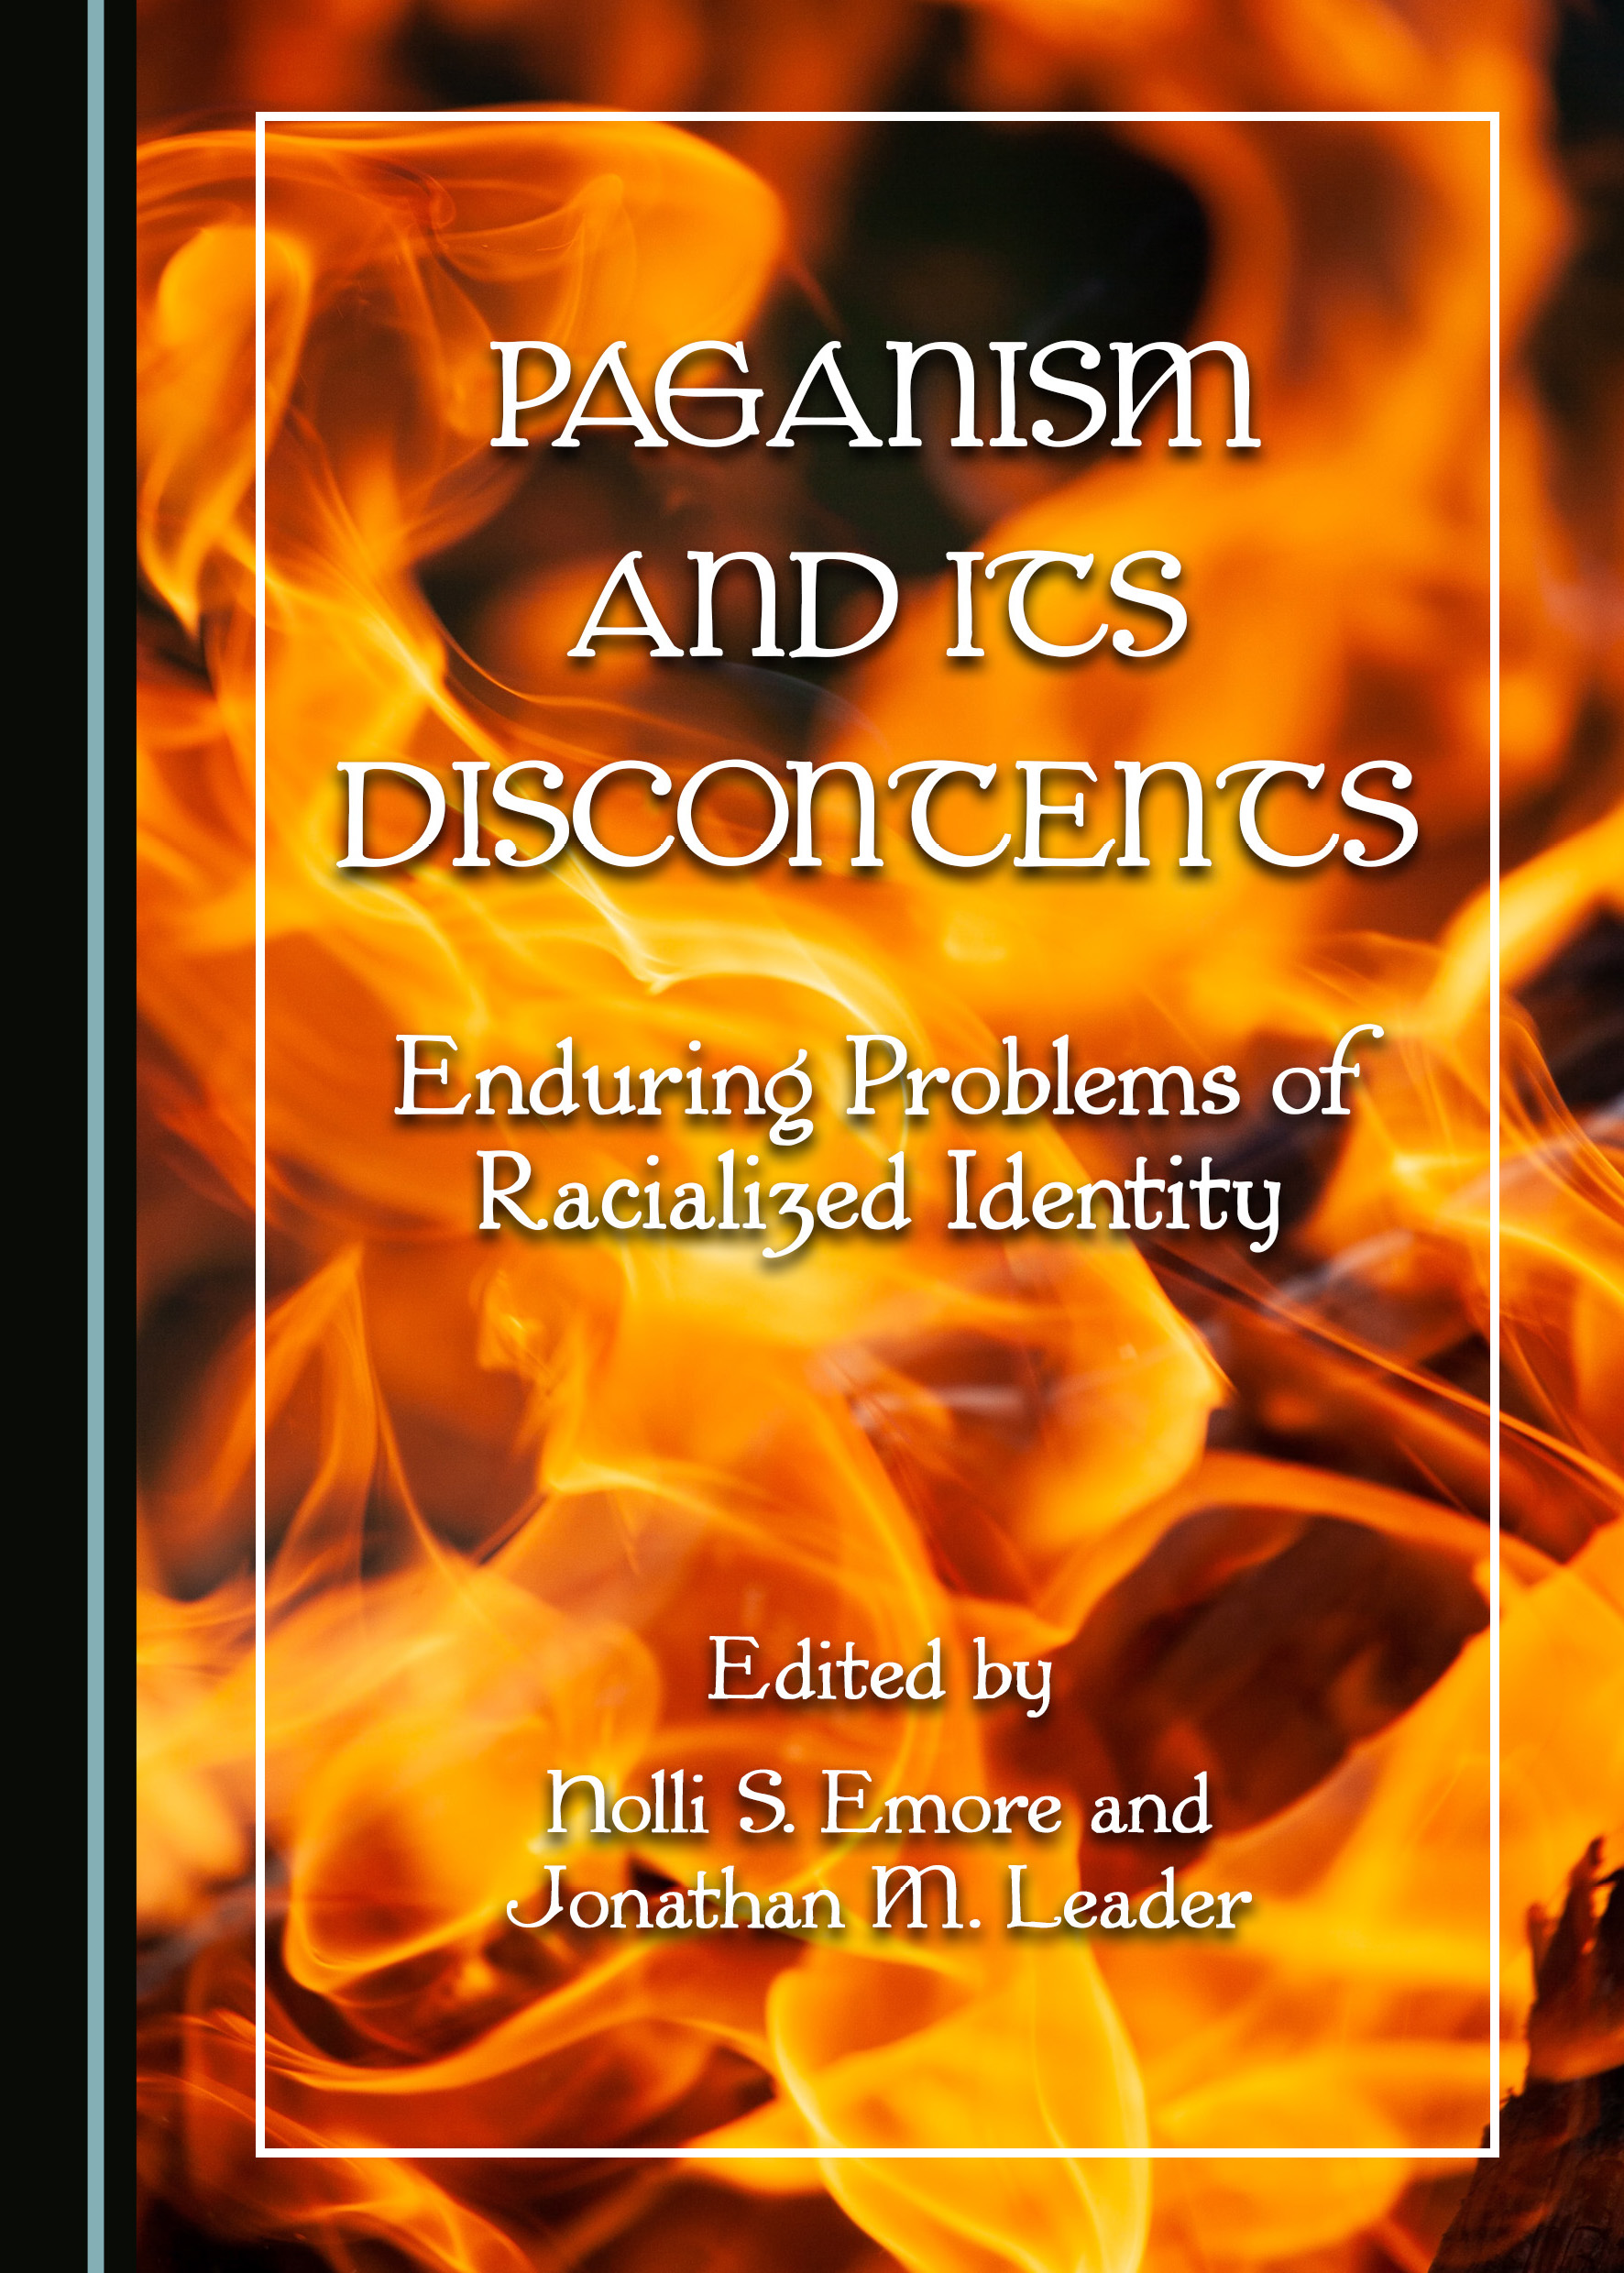 Paganism and Its Discontents: Enduring Problems of Racialized Identity